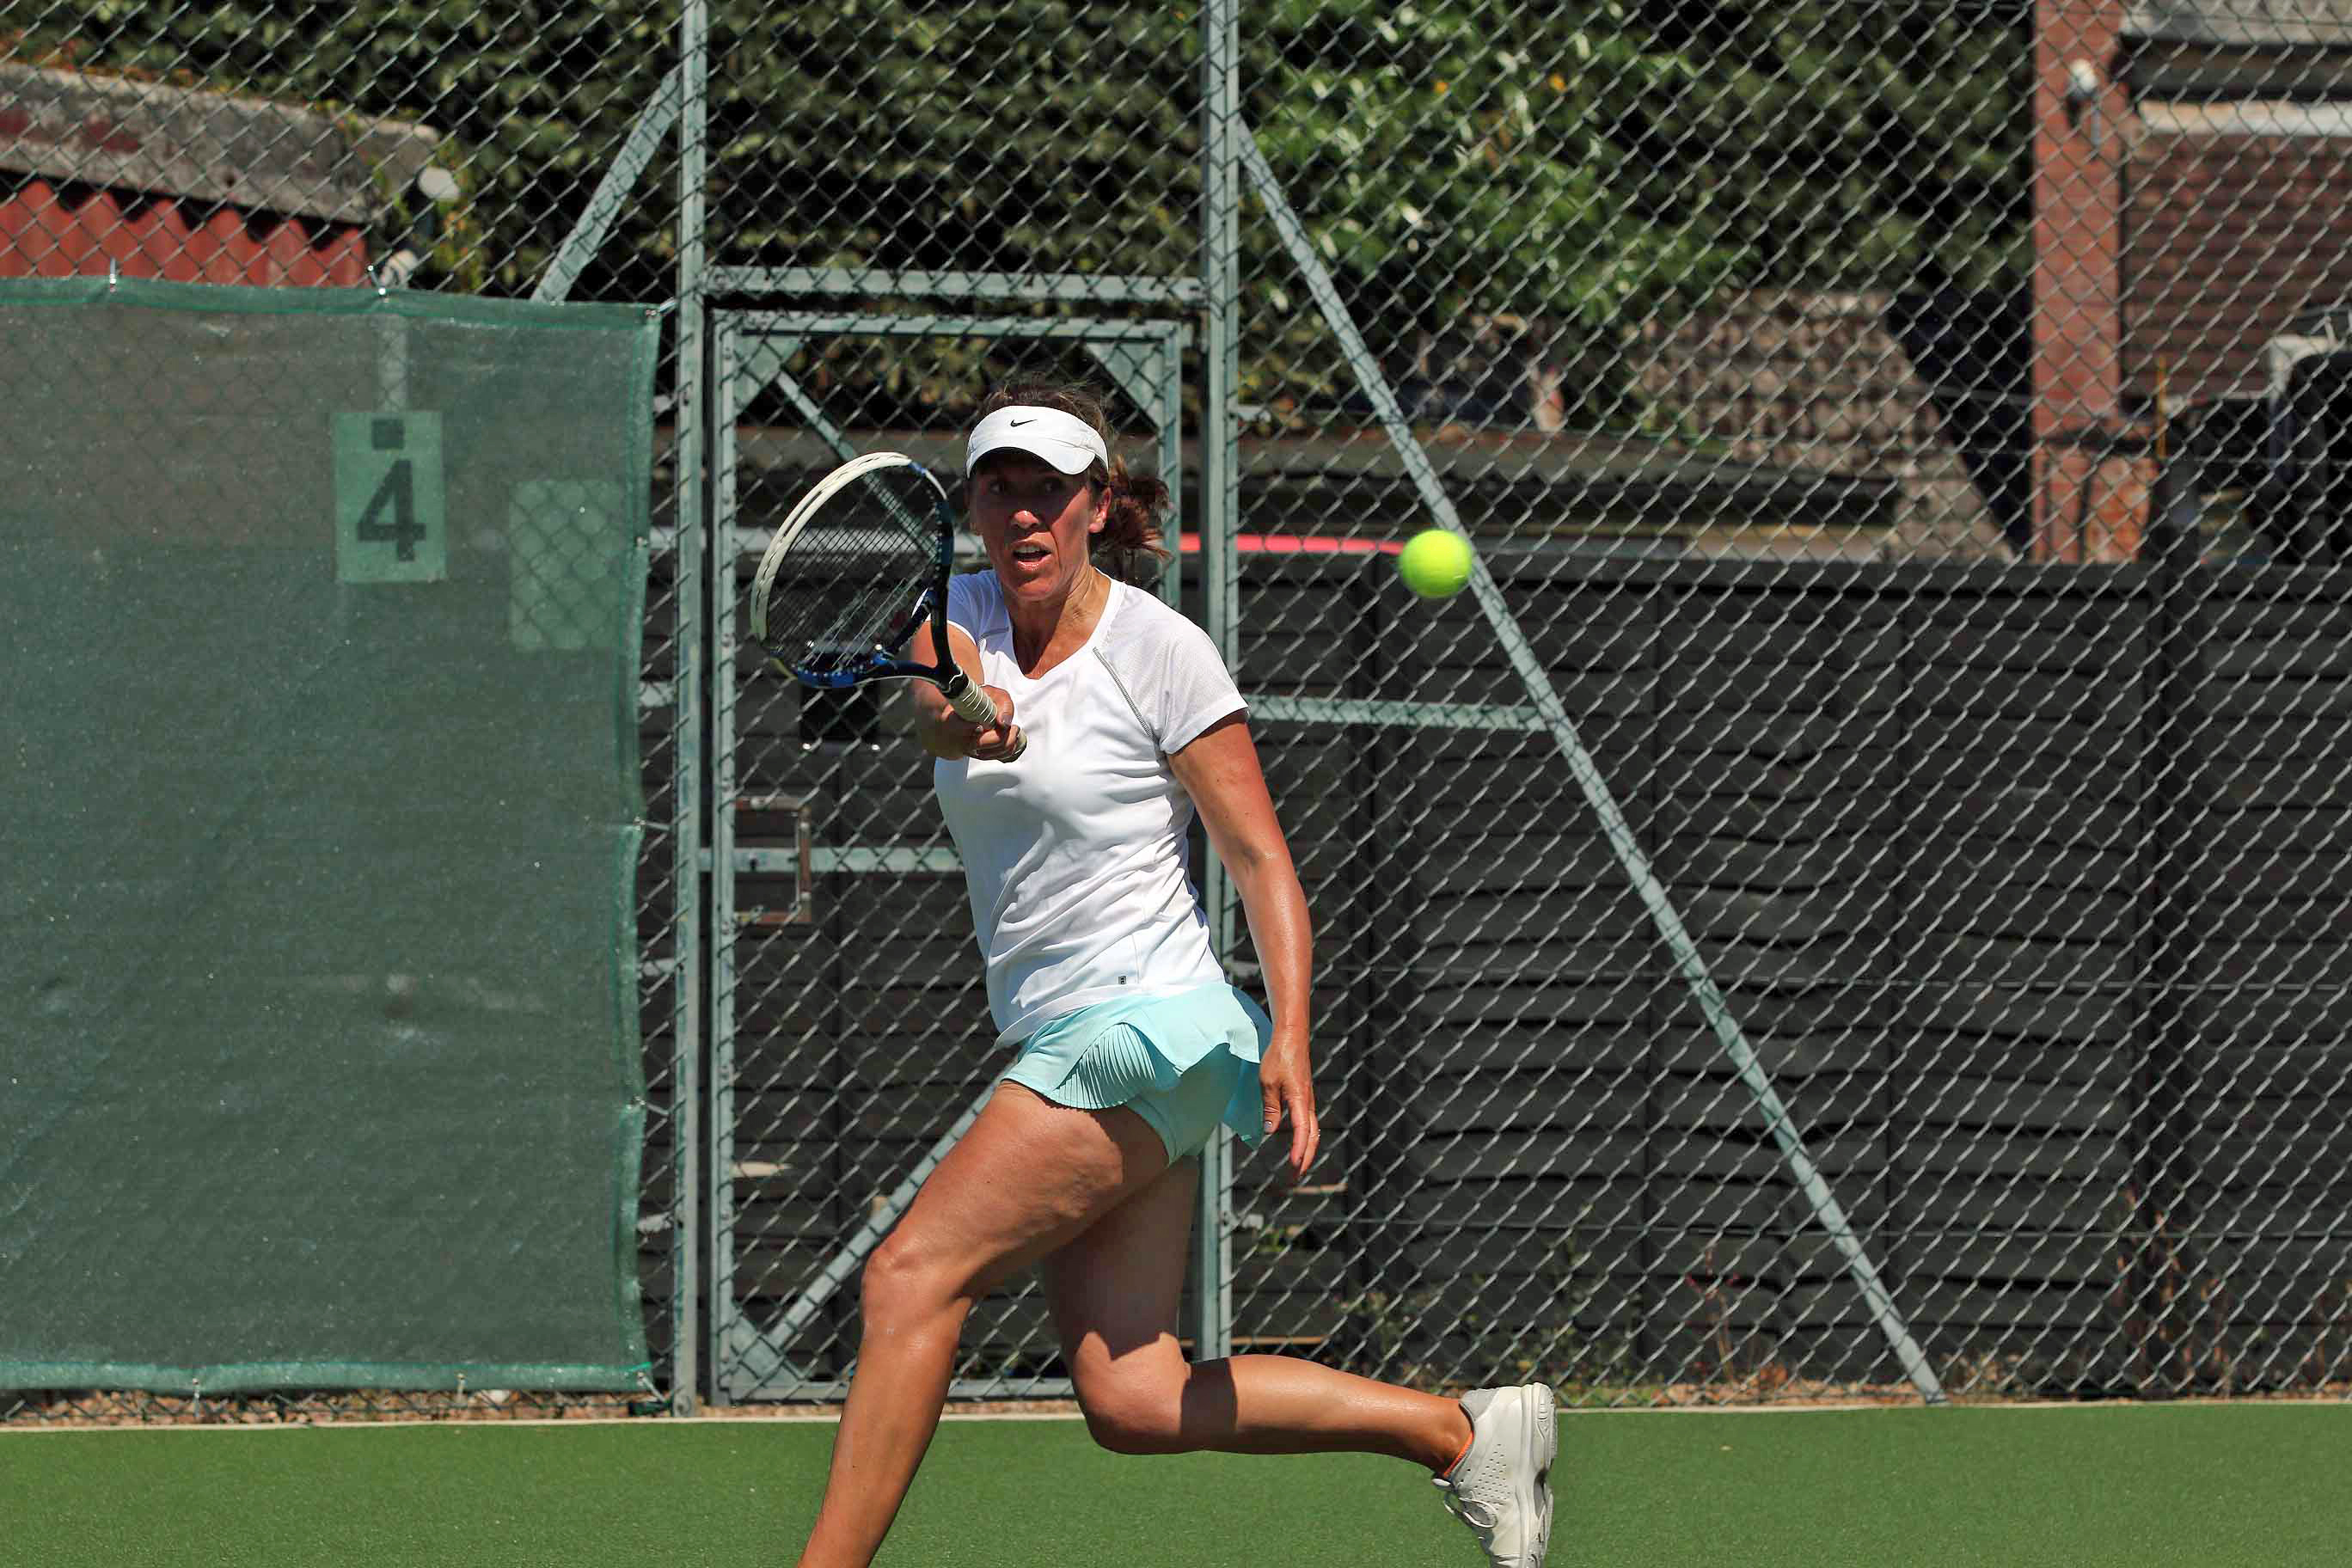 tennis summer championships exeter golf and country club